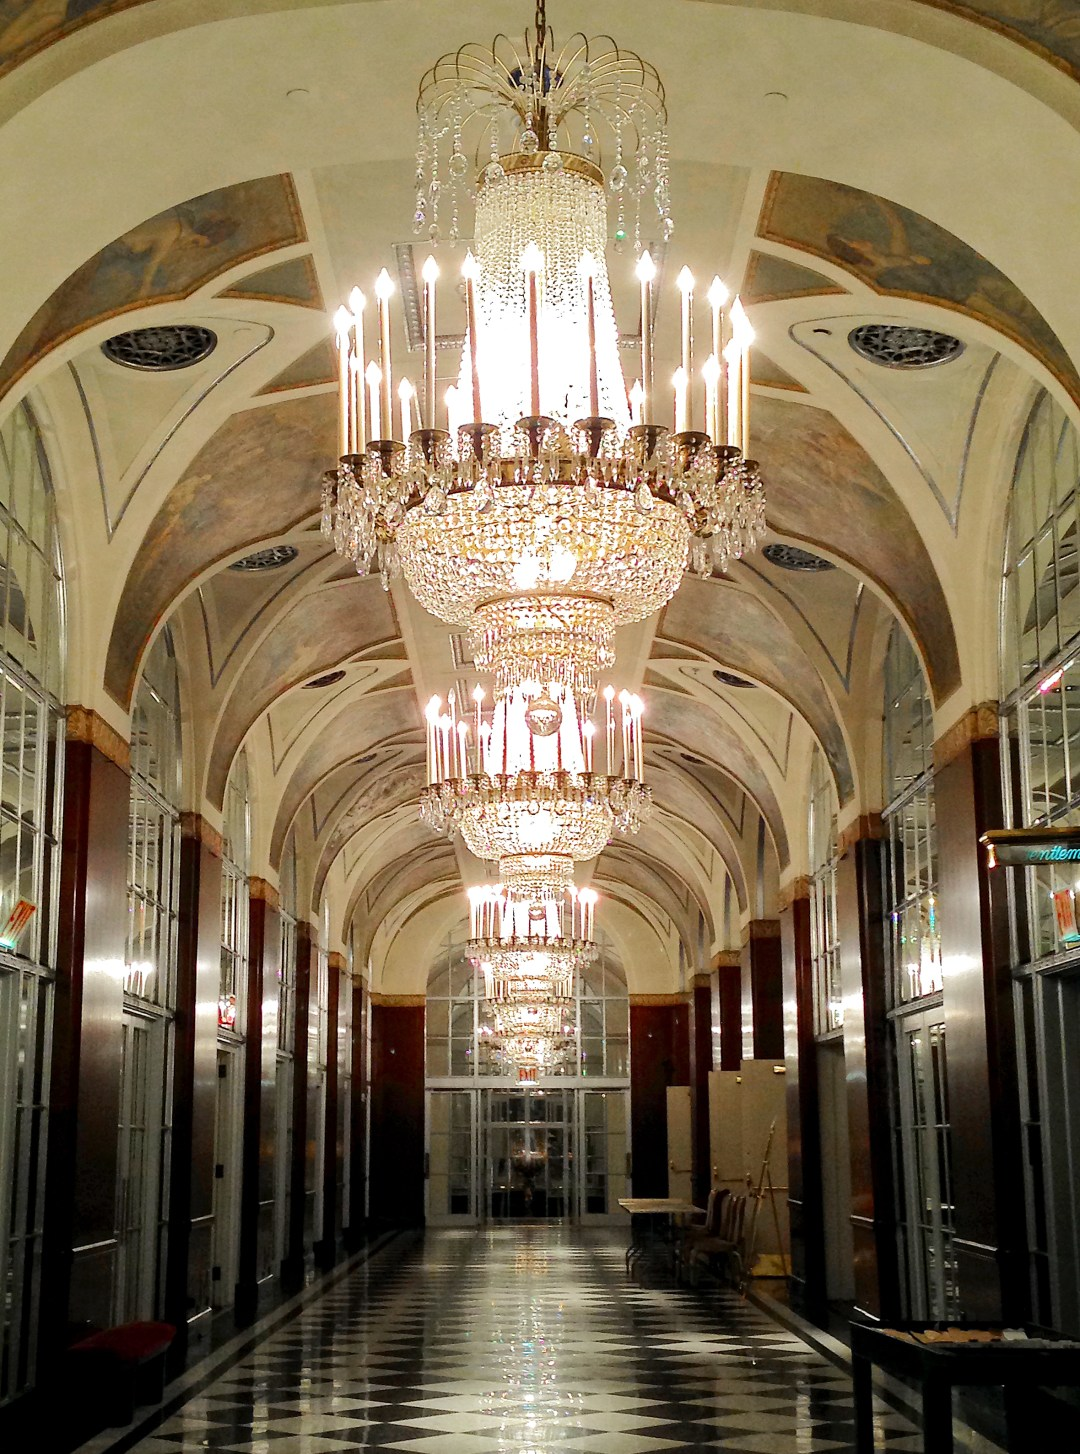 Hall of mirrors in Waldorf Astoria Hotel in NYC